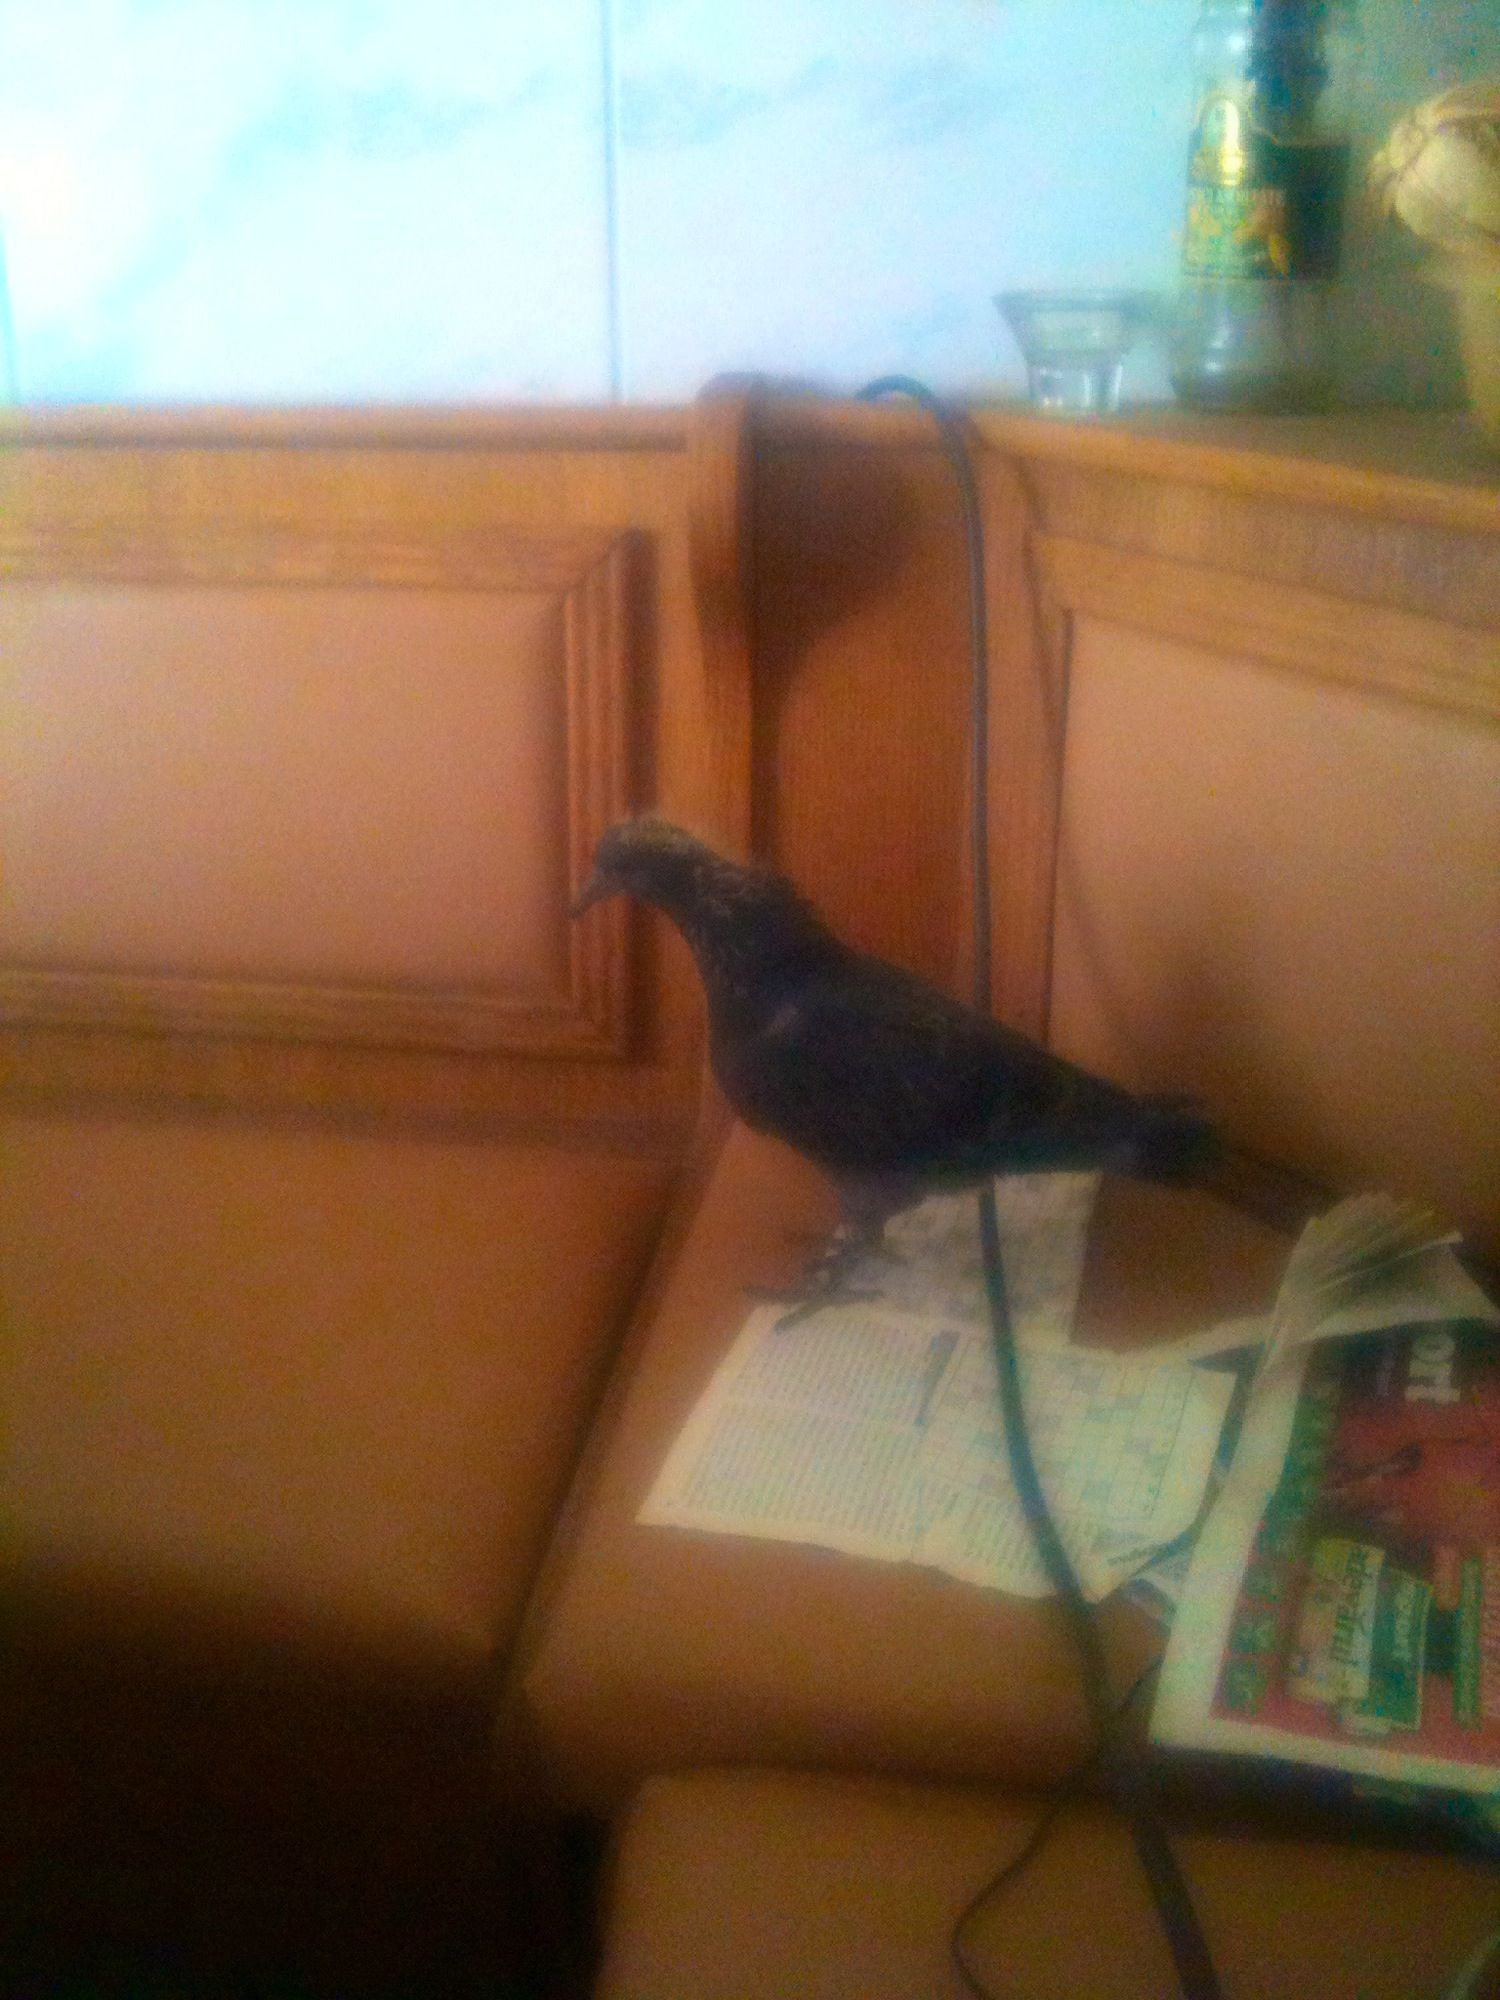 This dove likes to rest in the kitchen haha